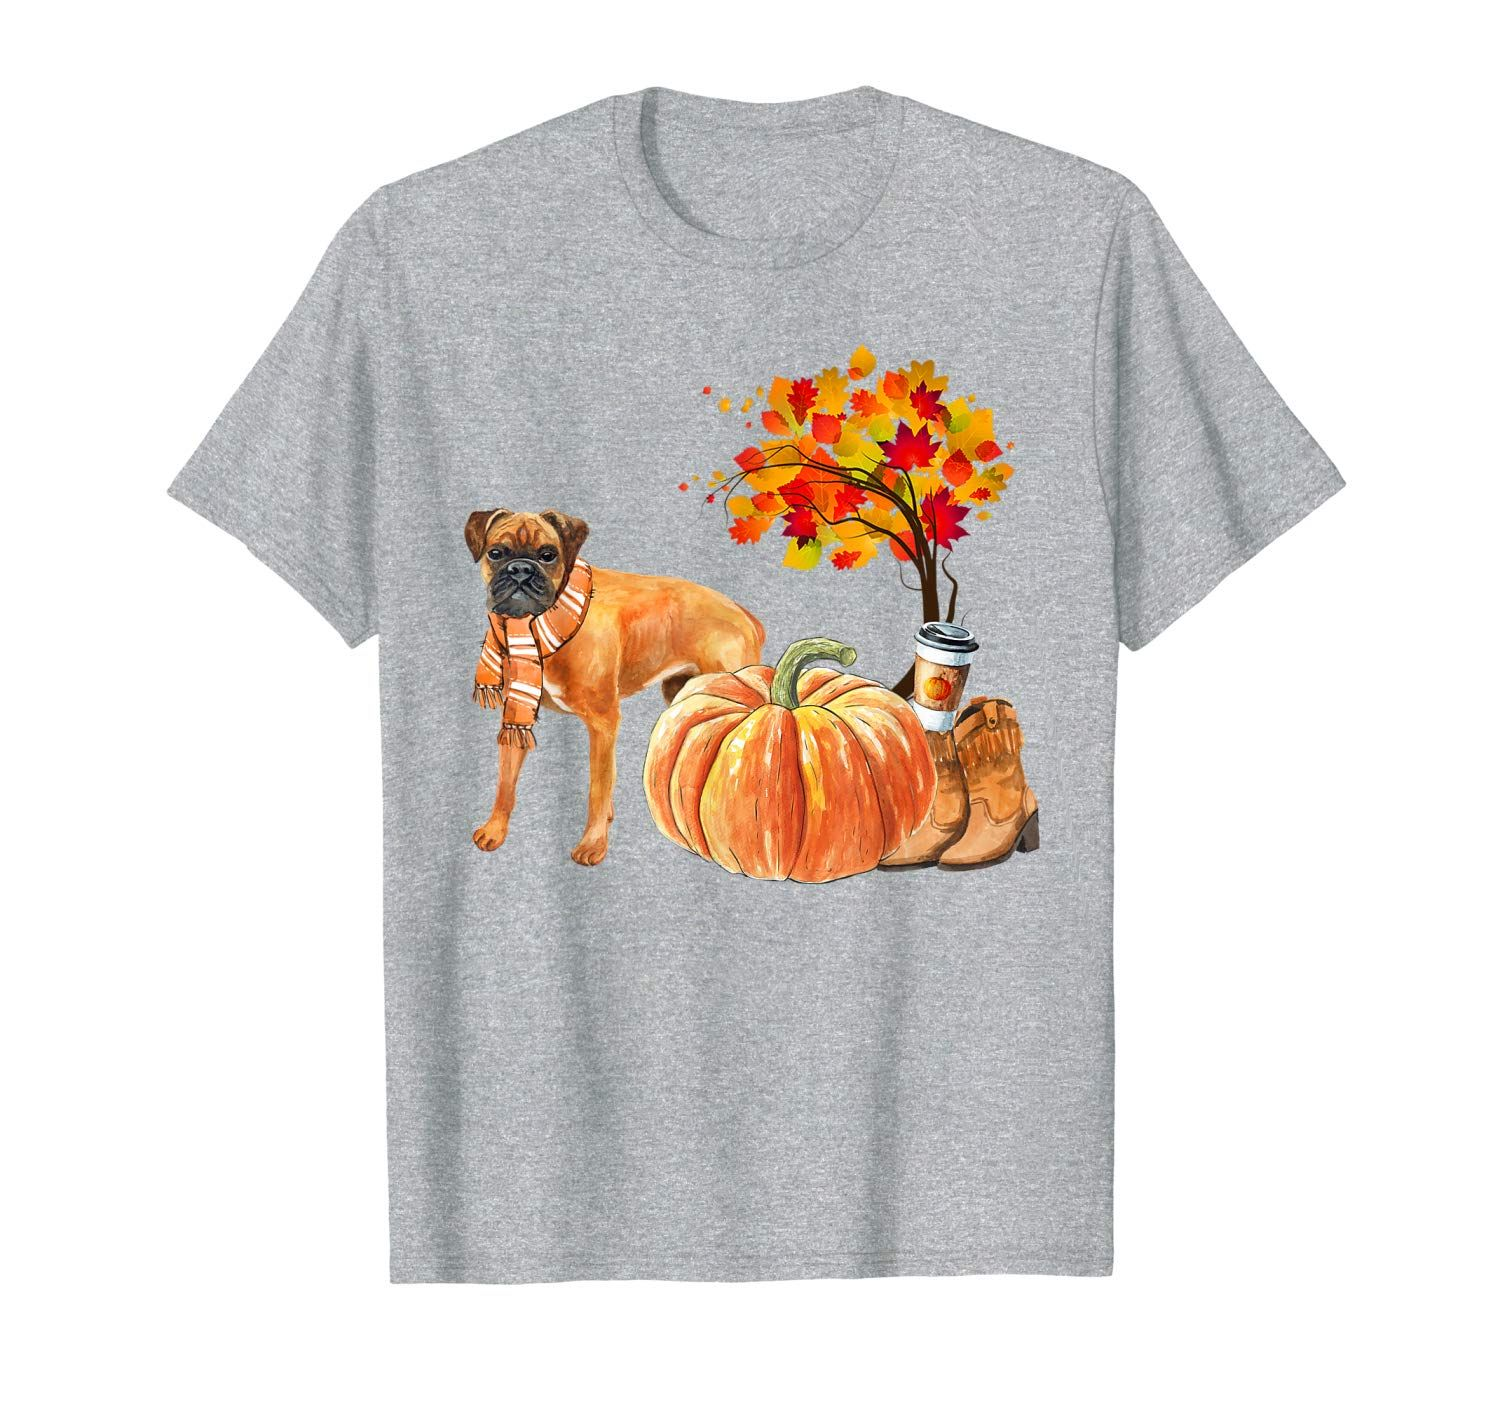 Cute Boxer Dog Scarf Pumpkin Spice Latte Autumn Leaves Fall T-Shirt #autumnleavesfalling